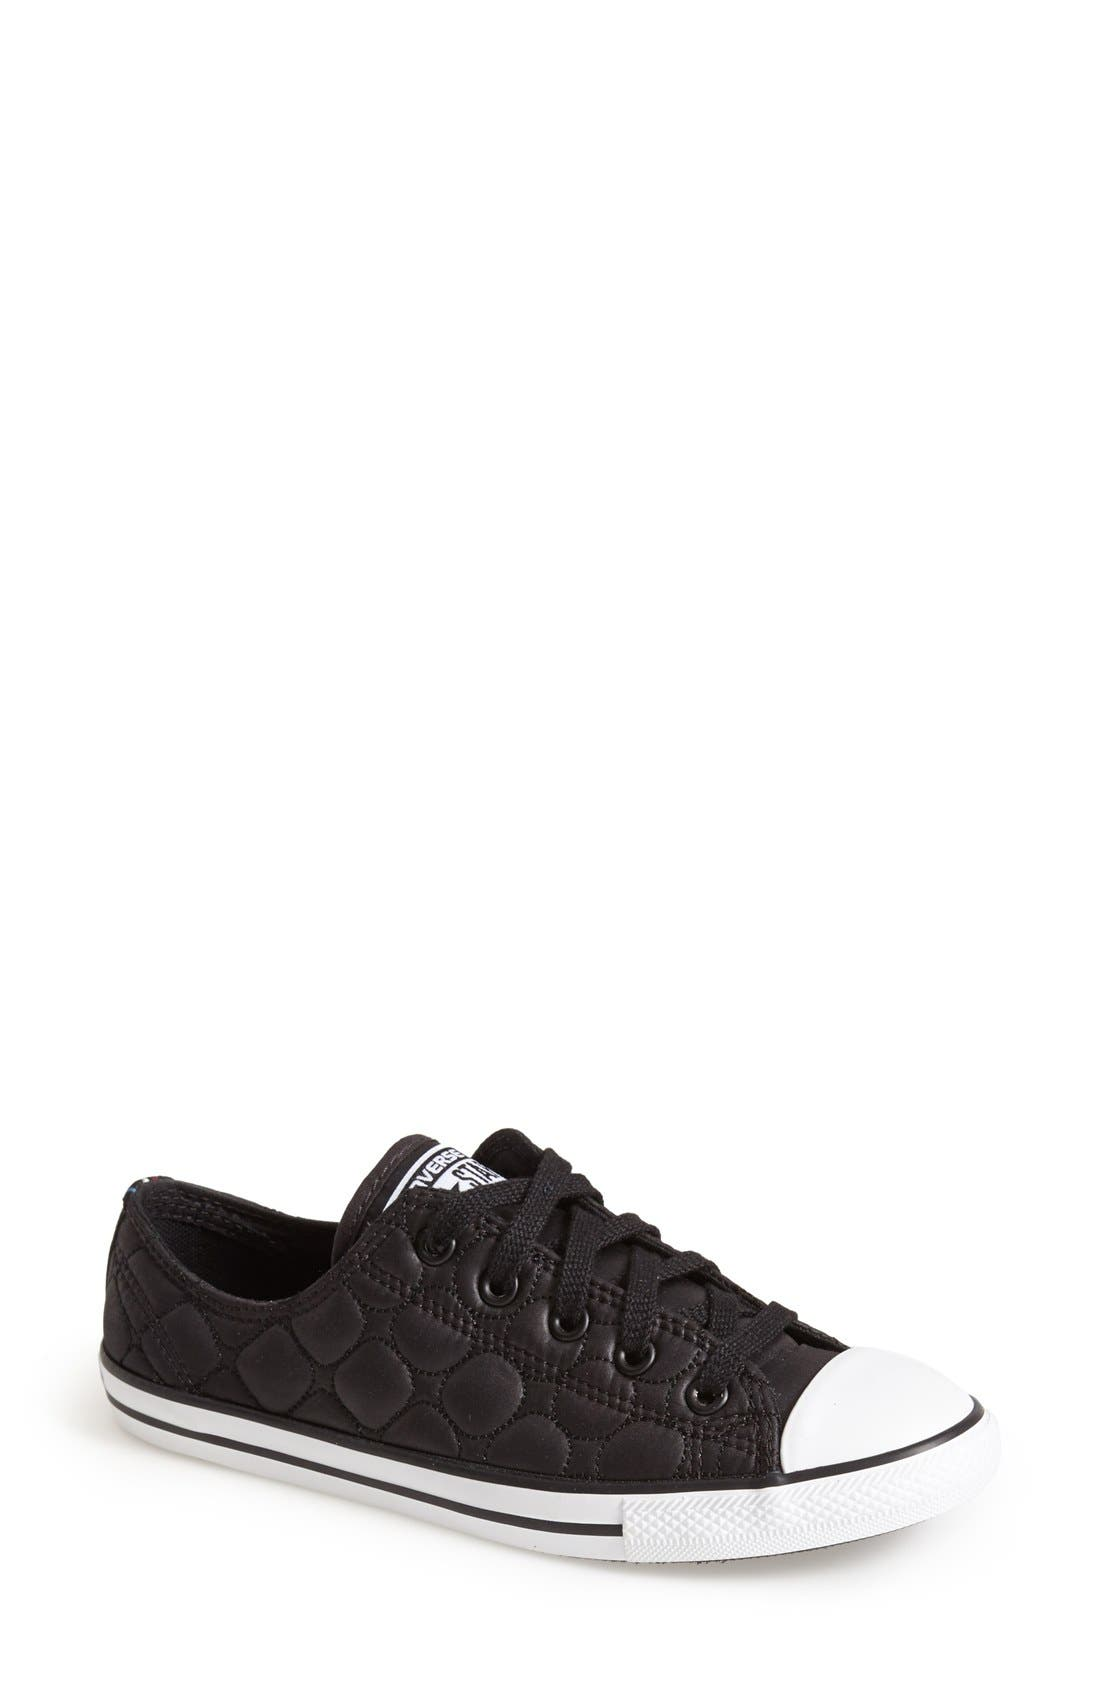 Main Image - Converse Chuck Taylor® All Star® 'Dainty' Quilted Sneaker (Women)